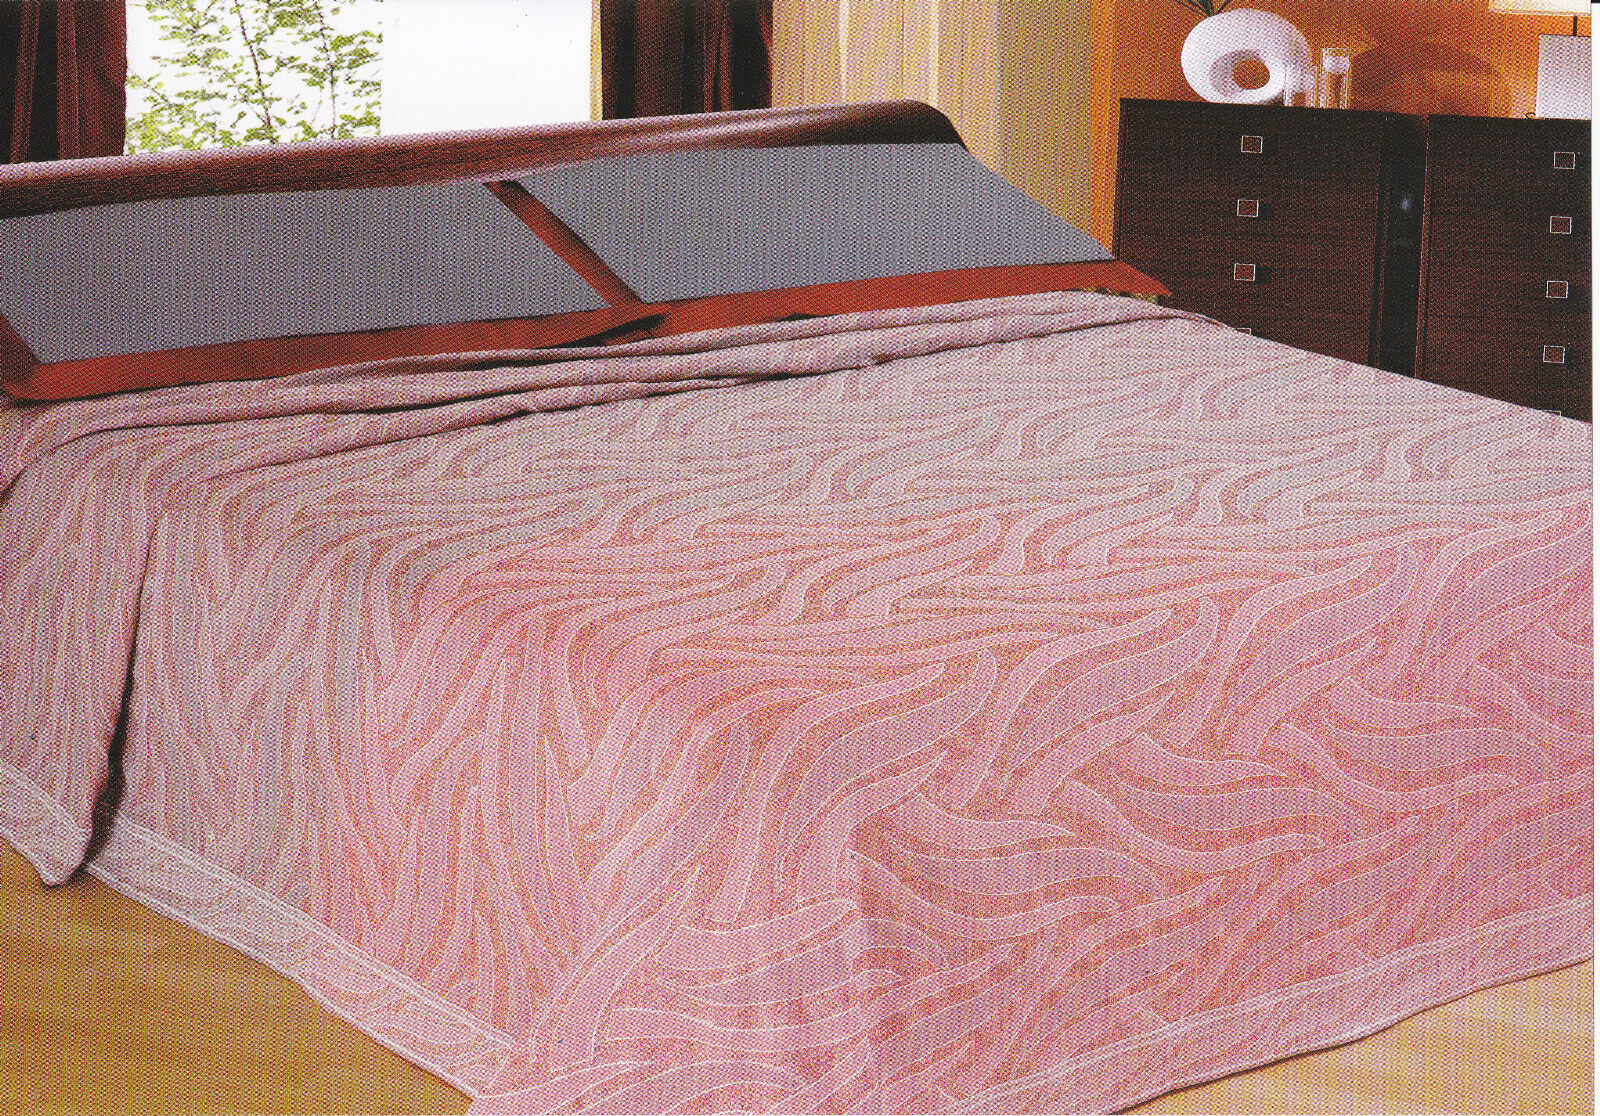 Double Bedspreads - 2 squares BIC RICAMI Available Burgundy and Pearl. ORION